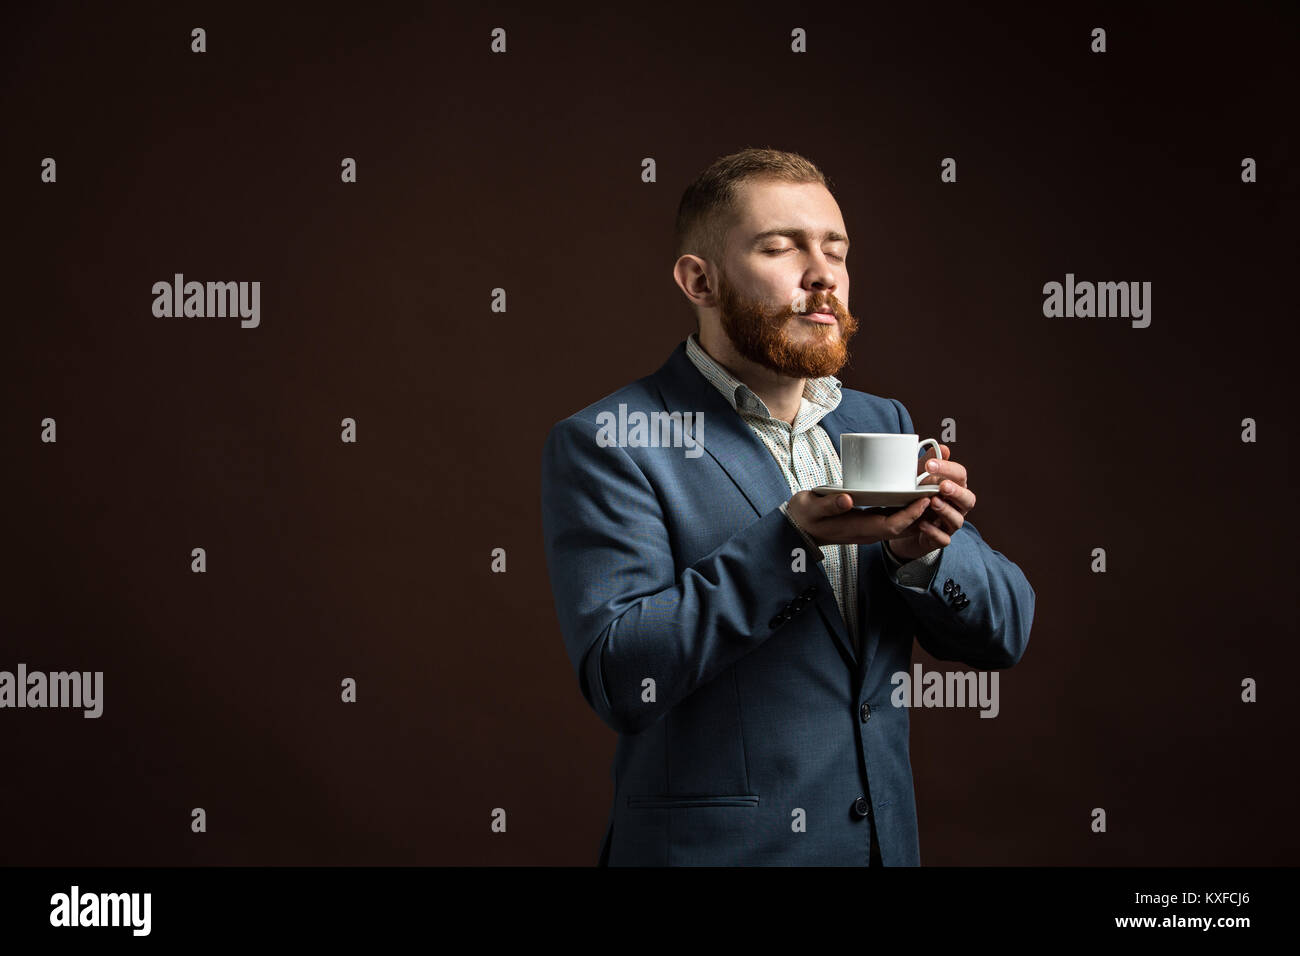 Handsome bearded man enjoying smell of coffee - Stock Image